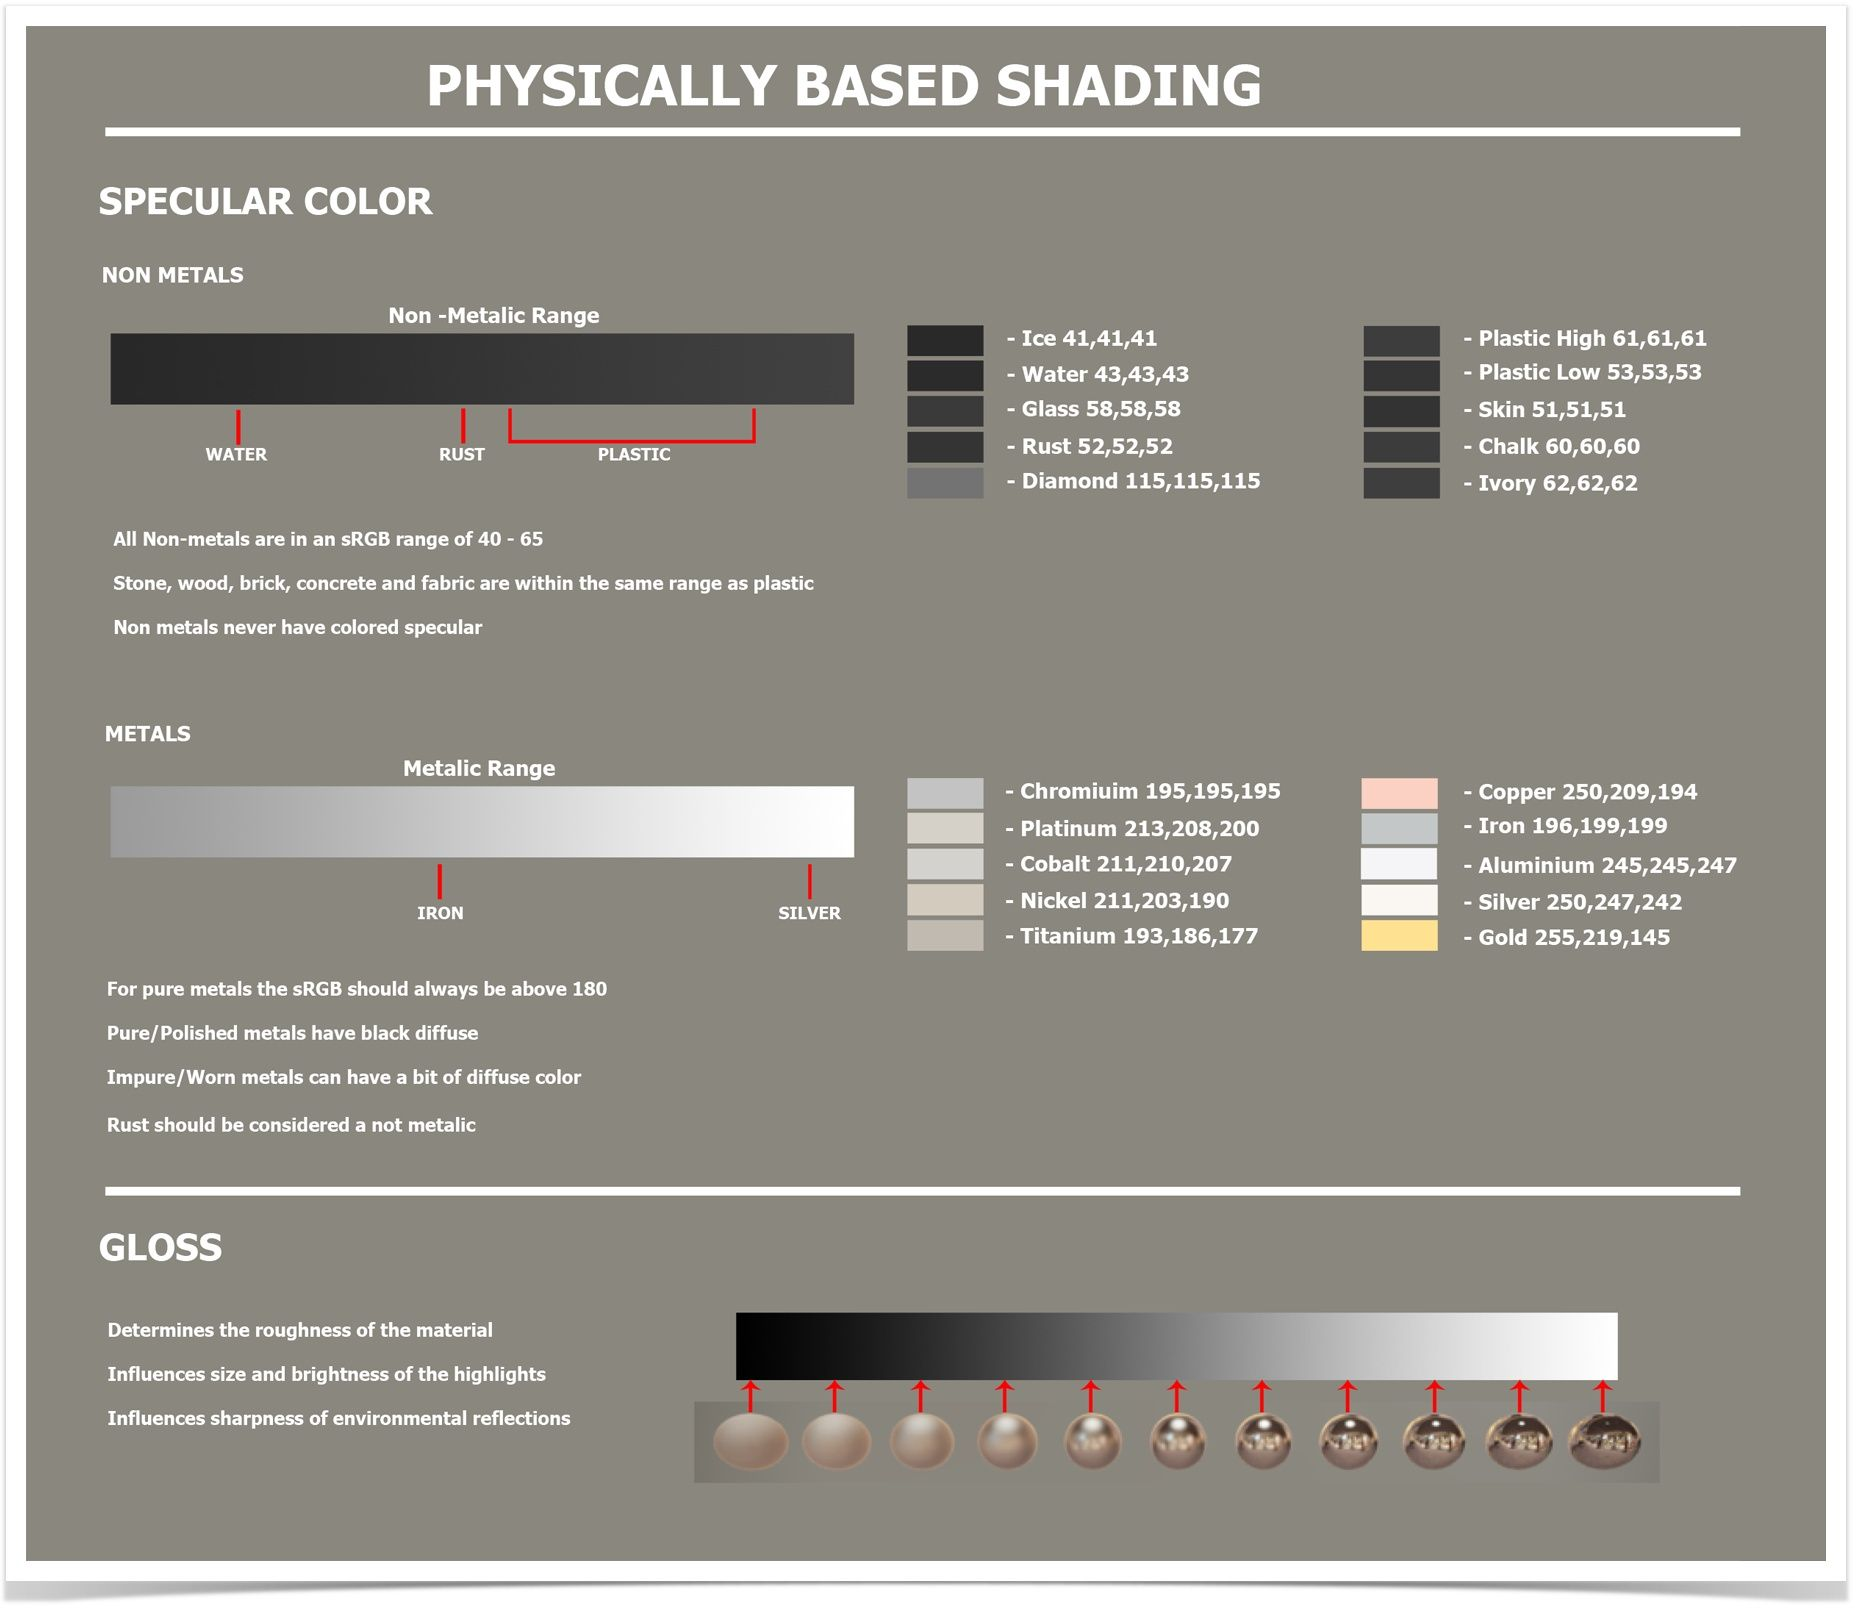 Physically Based Shading in CRYENGINE - Doc 3  Asset Creation Guide